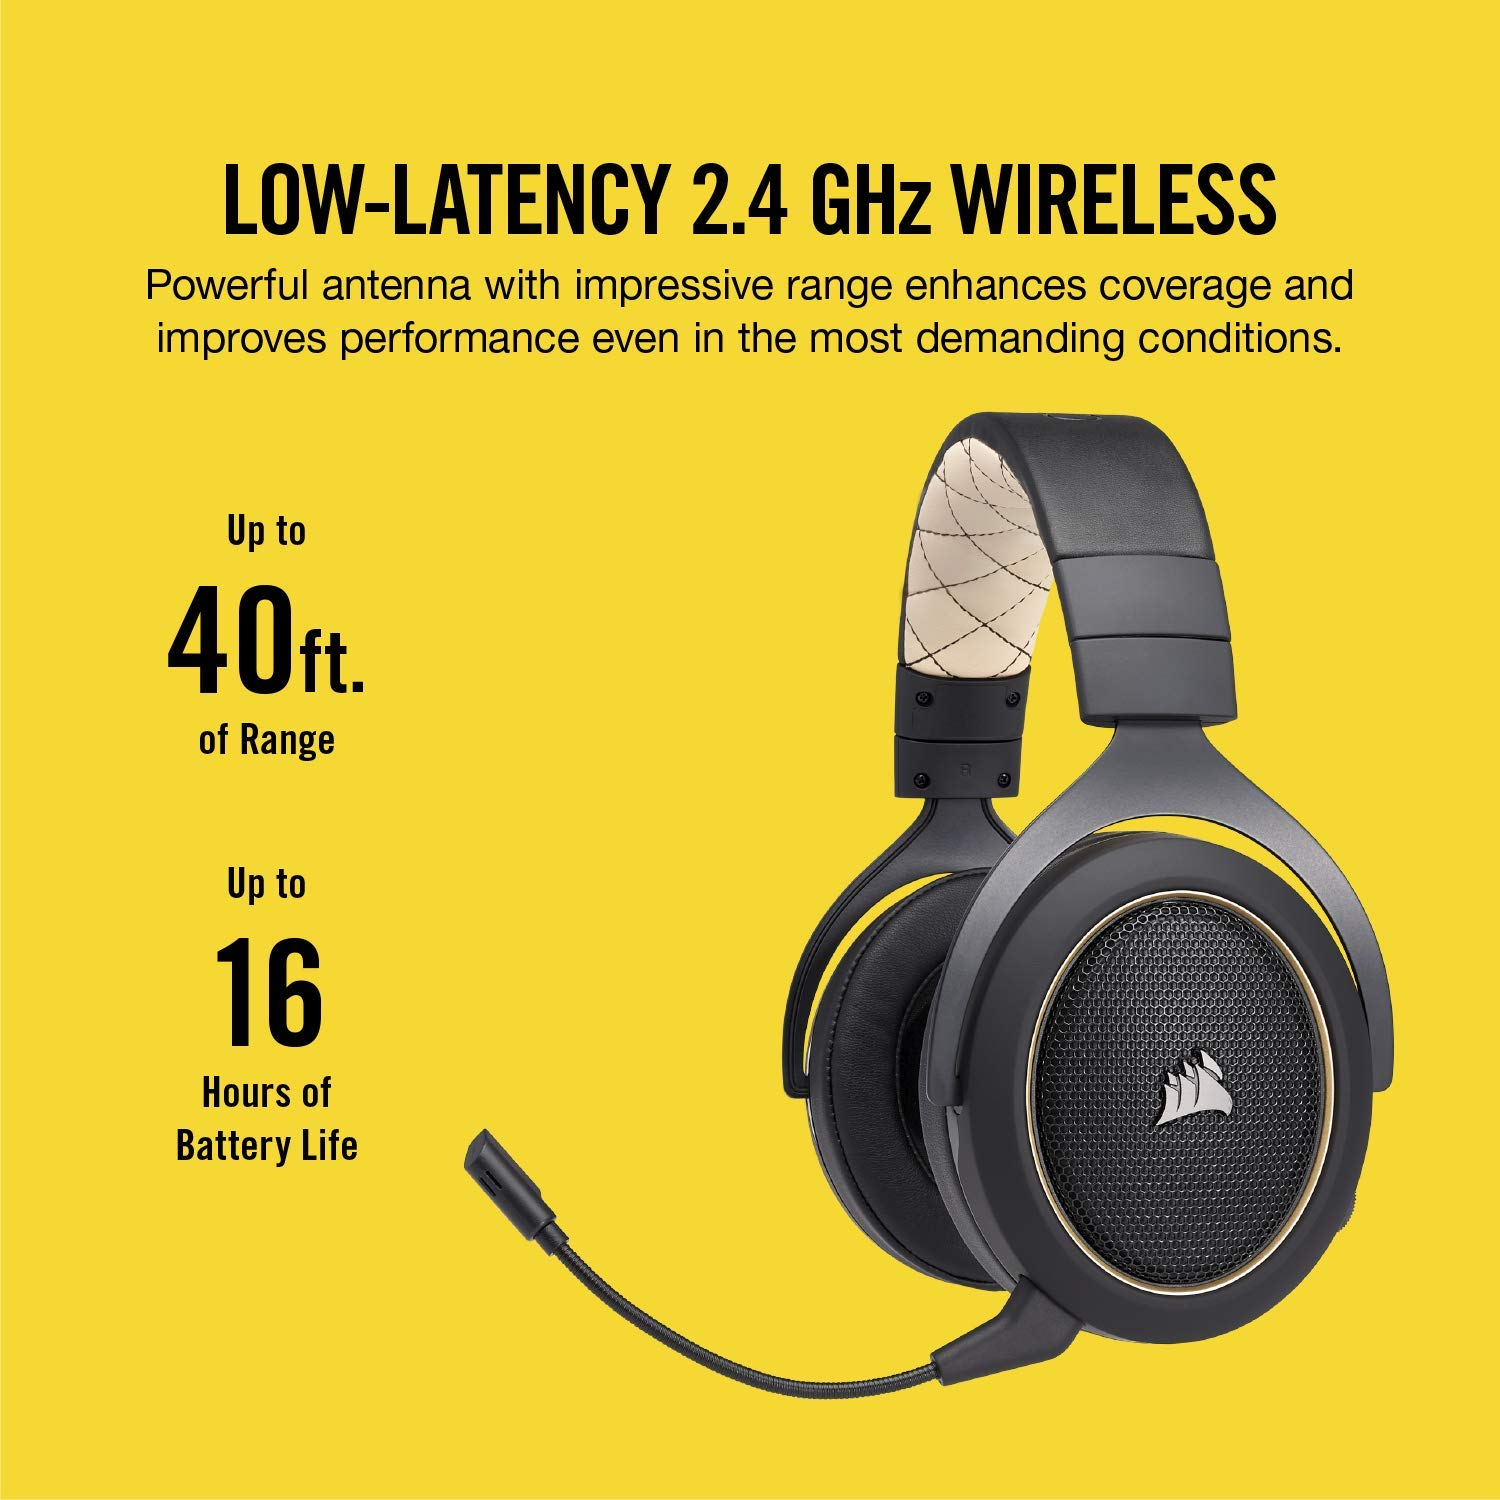 CORSAIR HS70 SE Wireless - 7.1 Surround Sound Gaming Headset - Discord Certified Headphones - Special Edition by Corsair (Image #4)